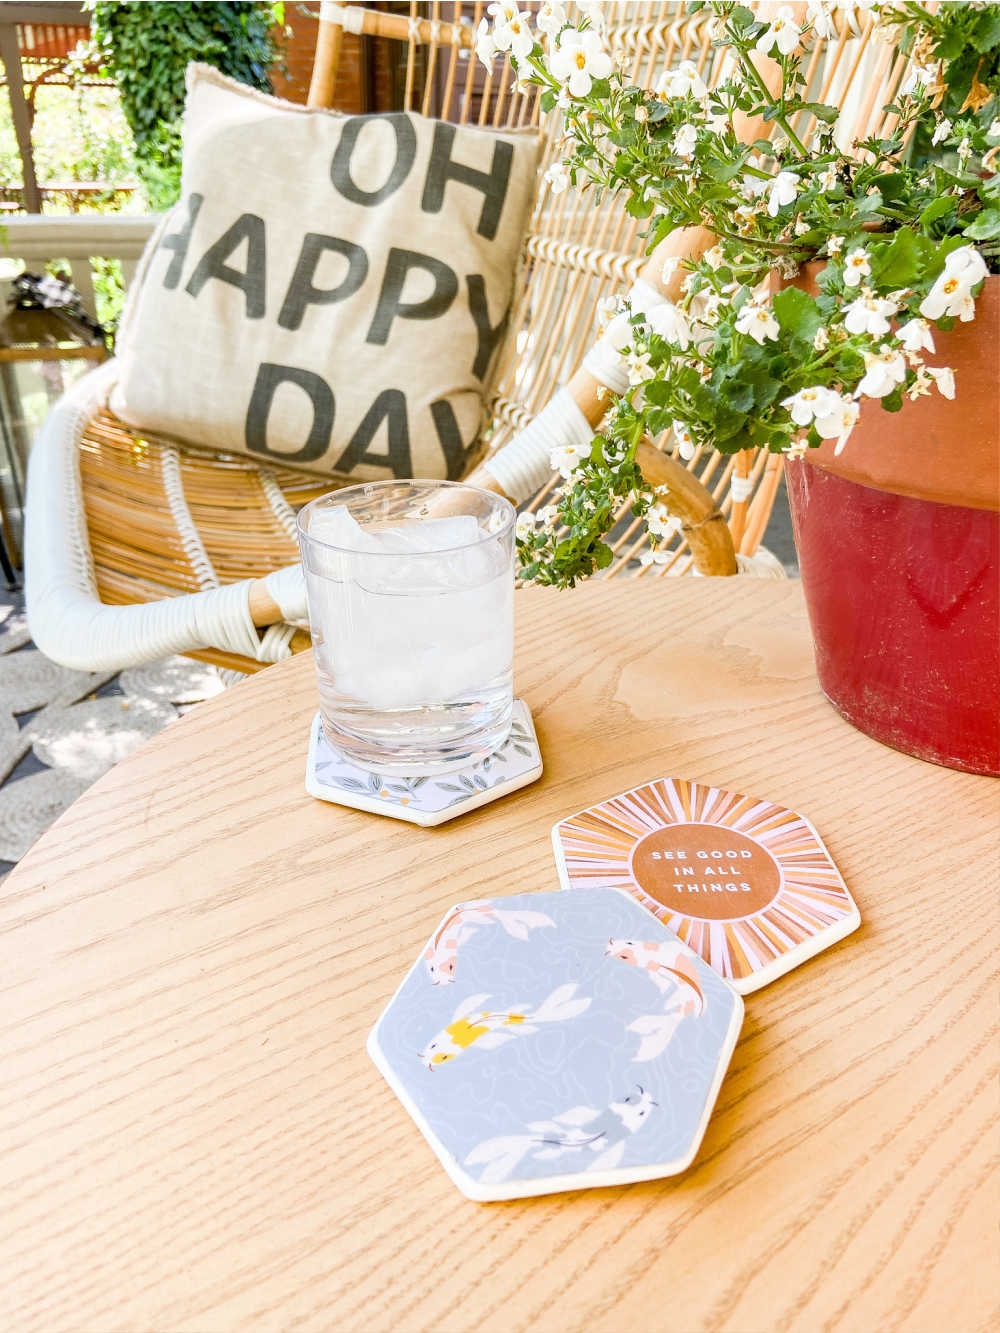 Summer Decoupage Concrete Coasters. Personalize concrete coasters with pretty paper for a DIY that's super easy and so fun to make with kids!